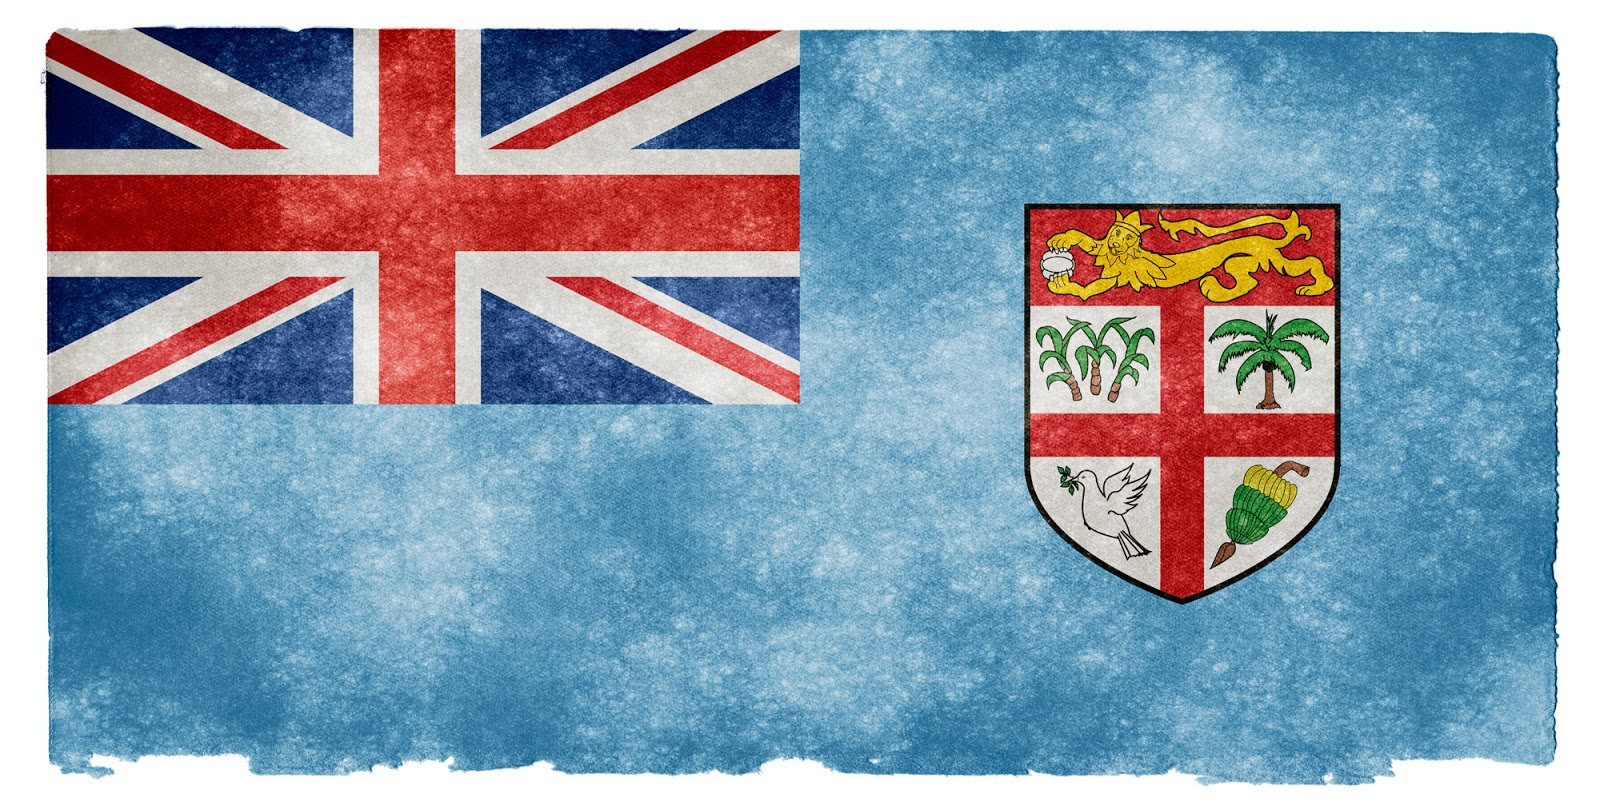 Flag Of Fiji Fijian Flags Image Source From This